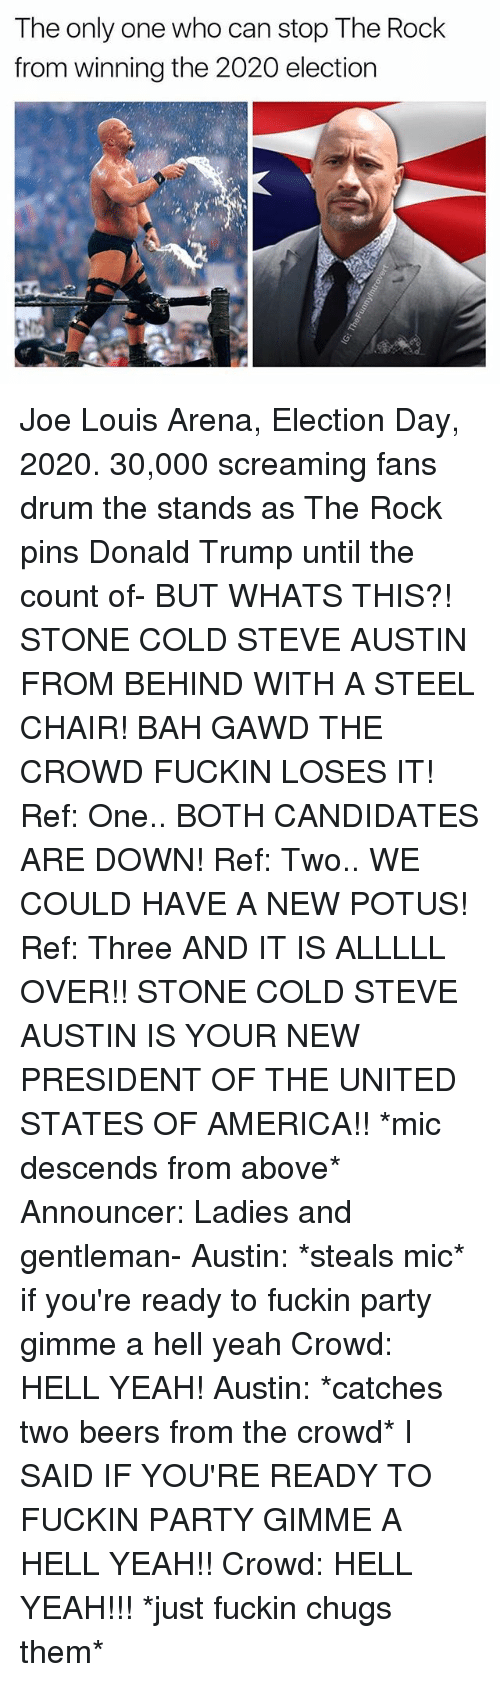 the count: The only one who can stop The Rock  from winning the 2020 election Joe Louis Arena, Election Day, 2020. 30,000 screaming fans drum the stands as The Rock pins Donald Trump until the count of- BUT WHATS THIS?! STONE COLD STEVE AUSTIN FROM BEHIND WITH A STEEL CHAIR! BAH GAWD THE CROWD FUCKIN LOSES IT! Ref: One.. BOTH CANDIDATES ARE DOWN! Ref: Two.. WE COULD HAVE A NEW POTUS! Ref: Three AND IT IS ALLLLL OVER!! STONE COLD STEVE AUSTIN IS YOUR NEW PRESIDENT OF THE UNITED STATES OF AMERICA!! *mic descends from above* Announcer: Ladies and gentleman- Austin: *steals mic* if you're ready to fuckin party gimme a hell yeah Crowd: HELL YEAH! Austin: *catches two beers from the crowd* I SAID IF YOU'RE READY TO FUCKIN PARTY GIMME A HELL YEAH!! Crowd: HELL YEAH!!! *just fuckin chugs them*